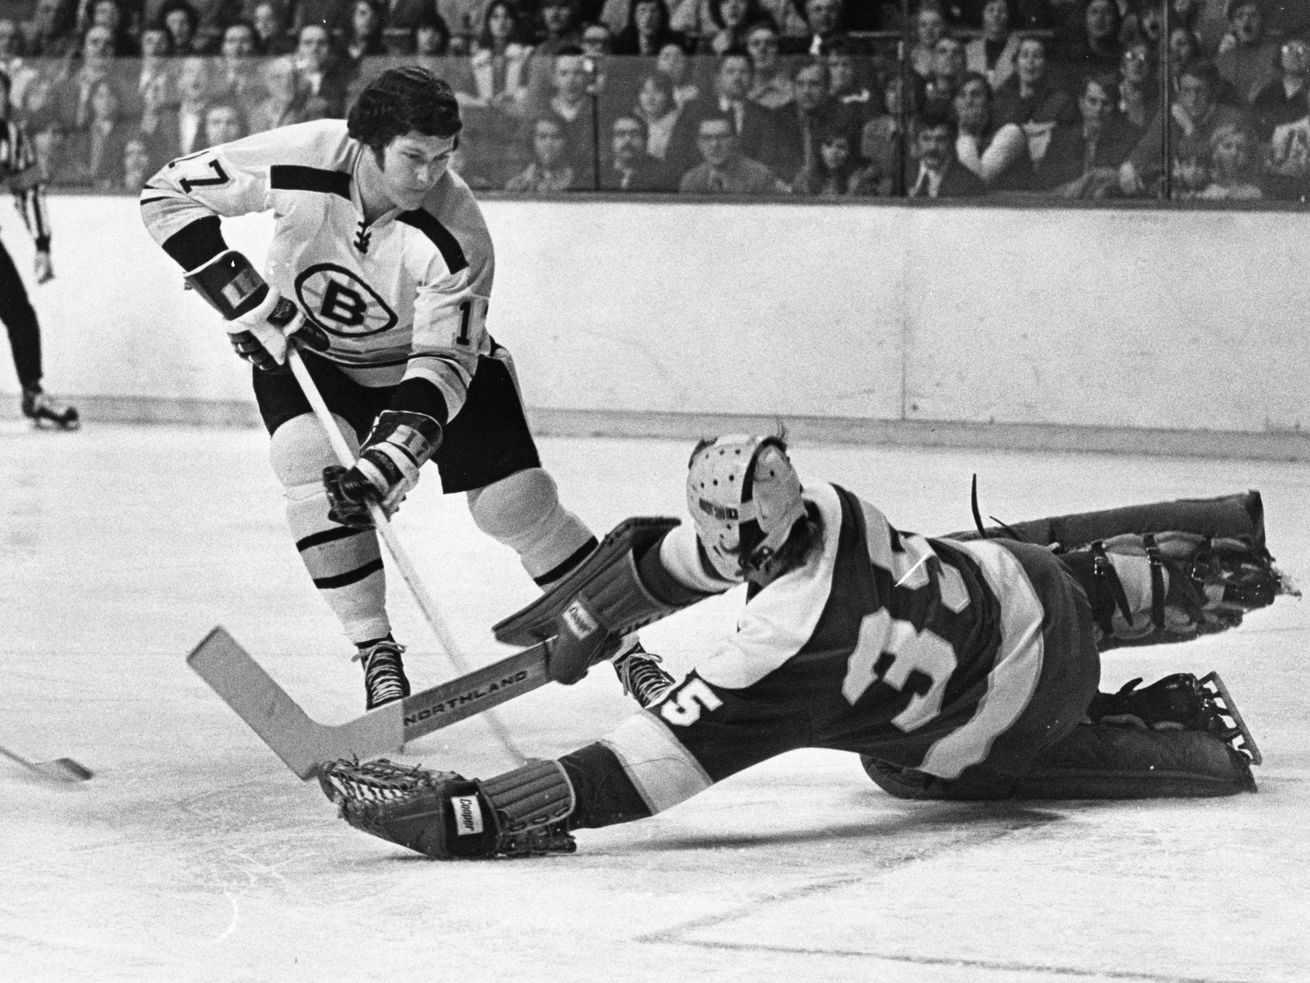 Boston Bruins' Fred Stanfield breaks in on goal against the Minnesota North Stars during an NHL hockey game in Boston in 1973. Stanfield, the mild-mannered sidekick to Bobby Orr on the high-scoring Bruins teams of the early 1970s, has died. He was 77.